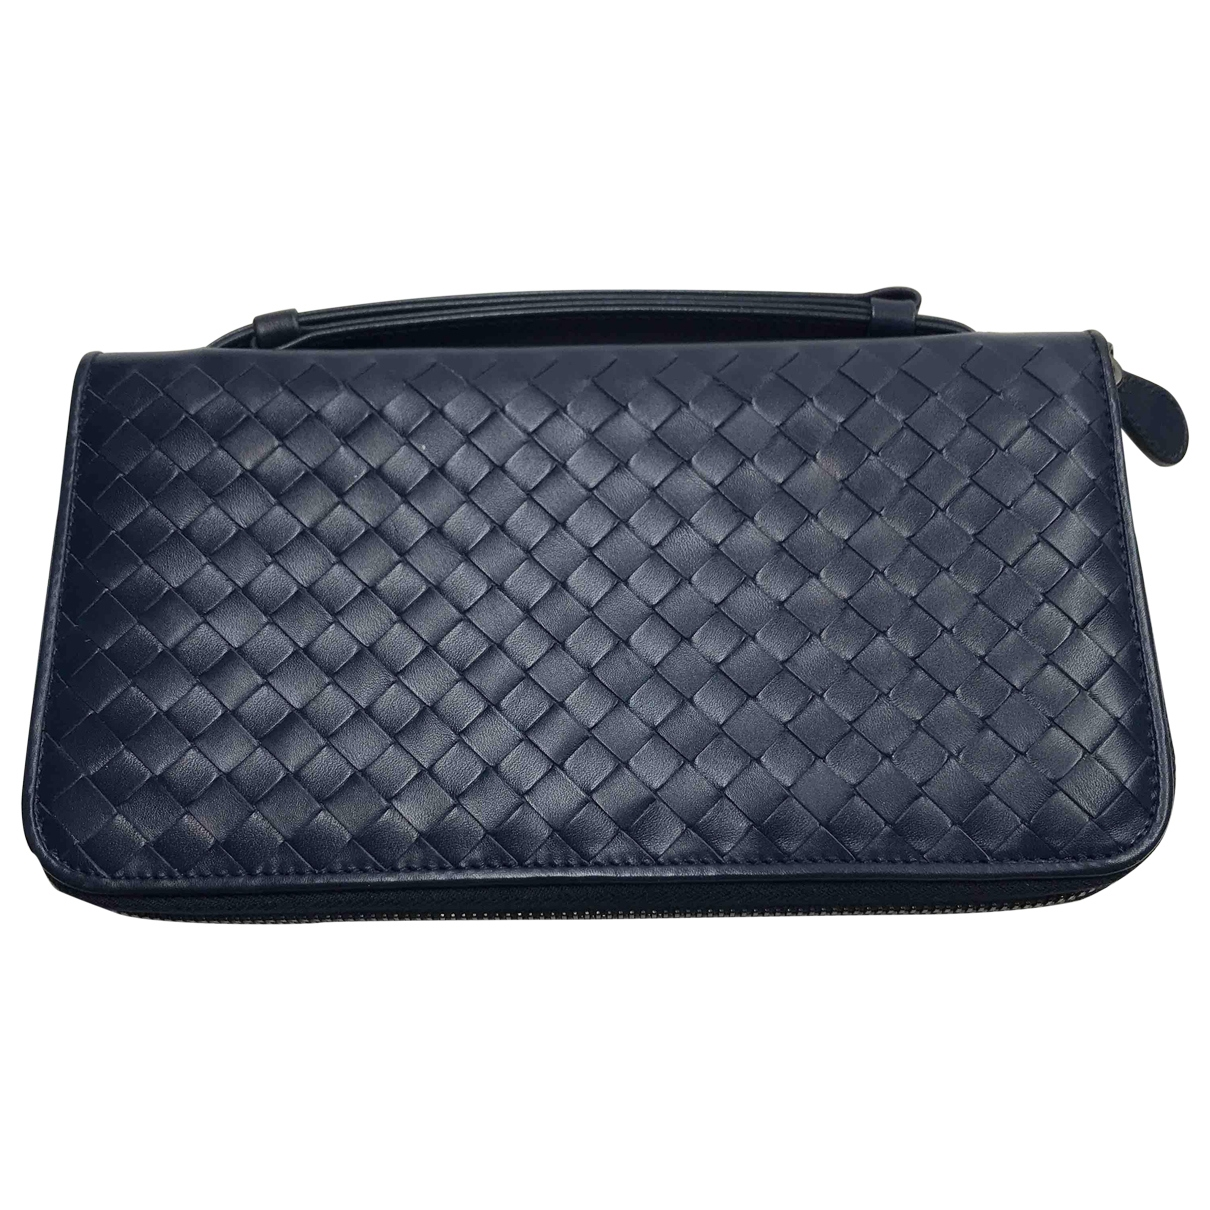 Bottega Veneta \N Blue Leather Clutch bag for Women \N